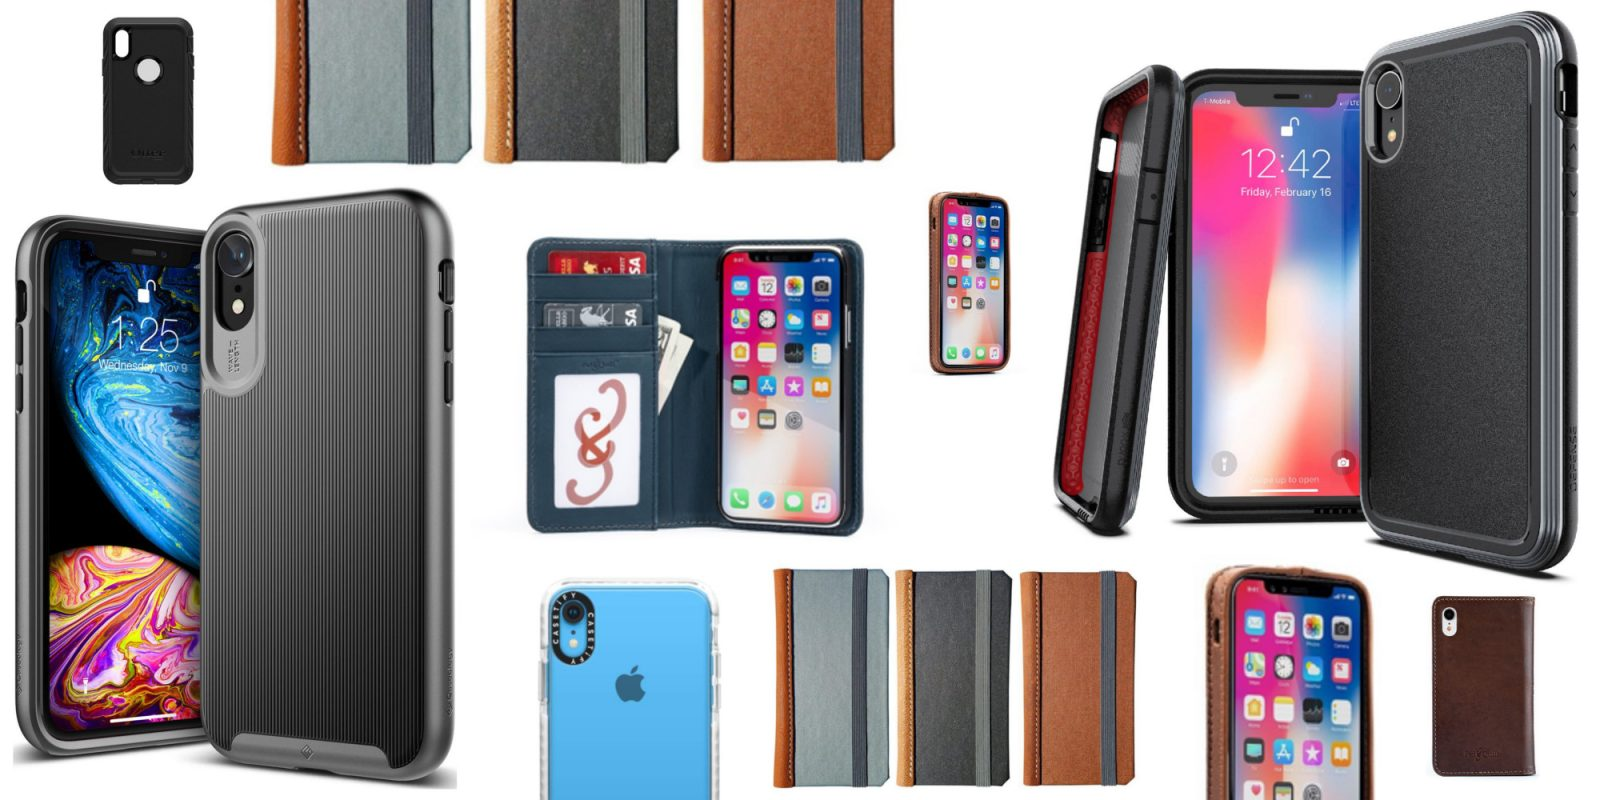 buy online 32909 6a29f The best new iPhone XR cases available now - 9to5Mac